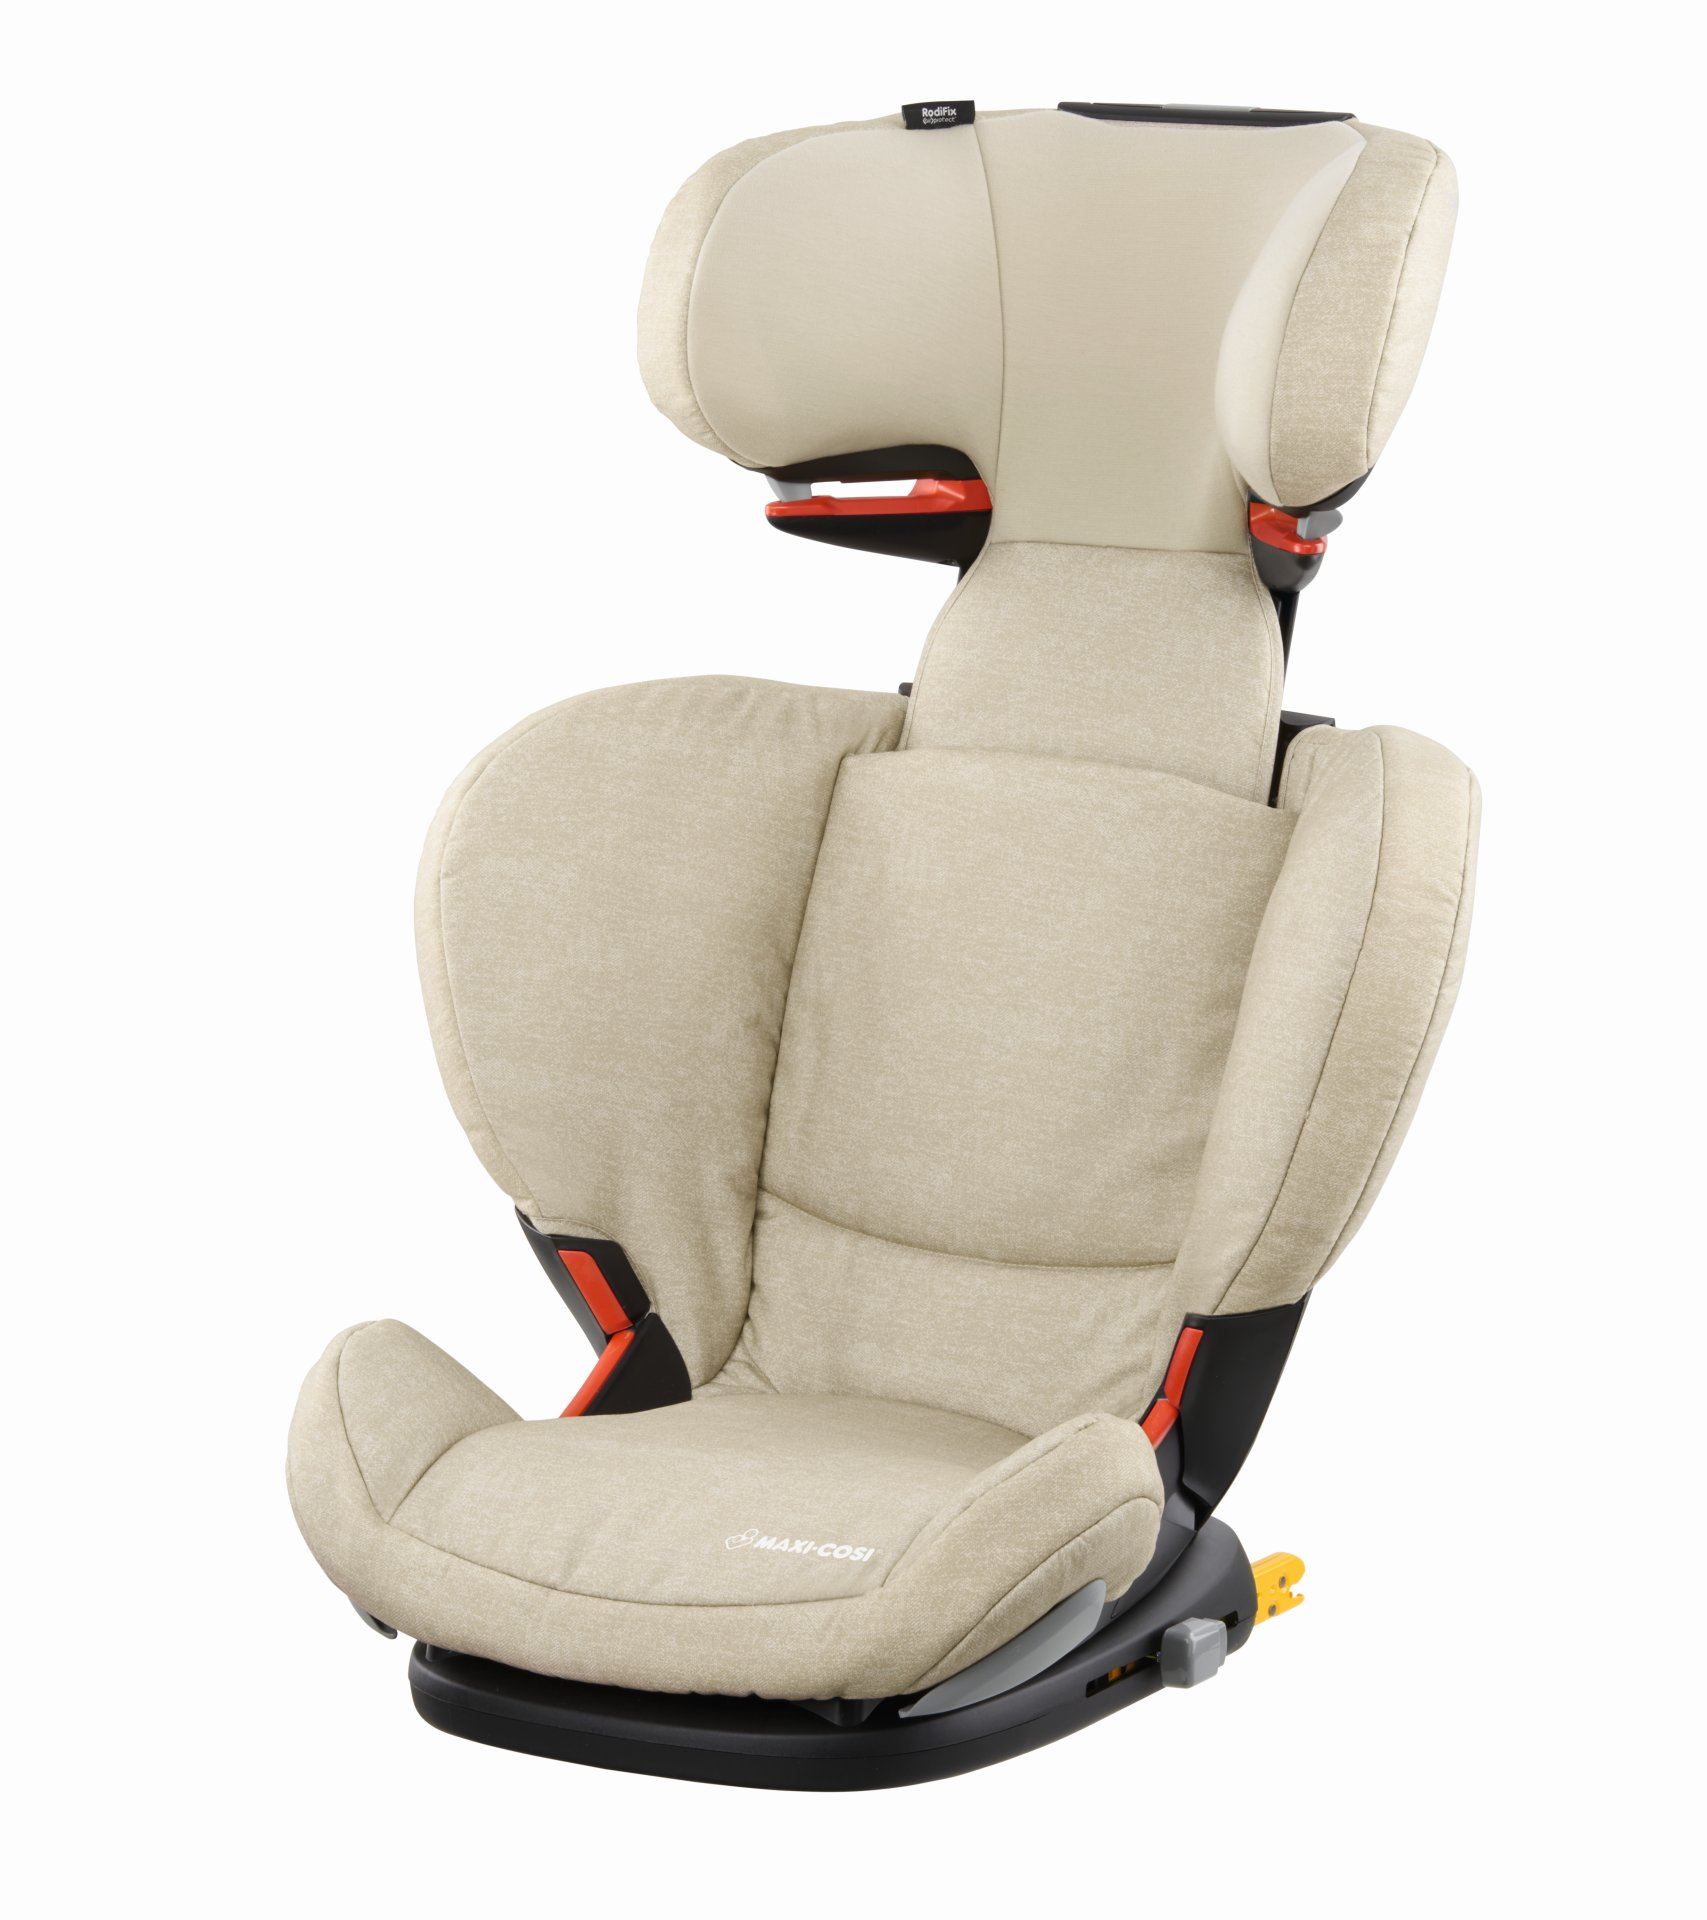 maxi cosi child car seat rodifix airprotect 2019 nomad. Black Bedroom Furniture Sets. Home Design Ideas